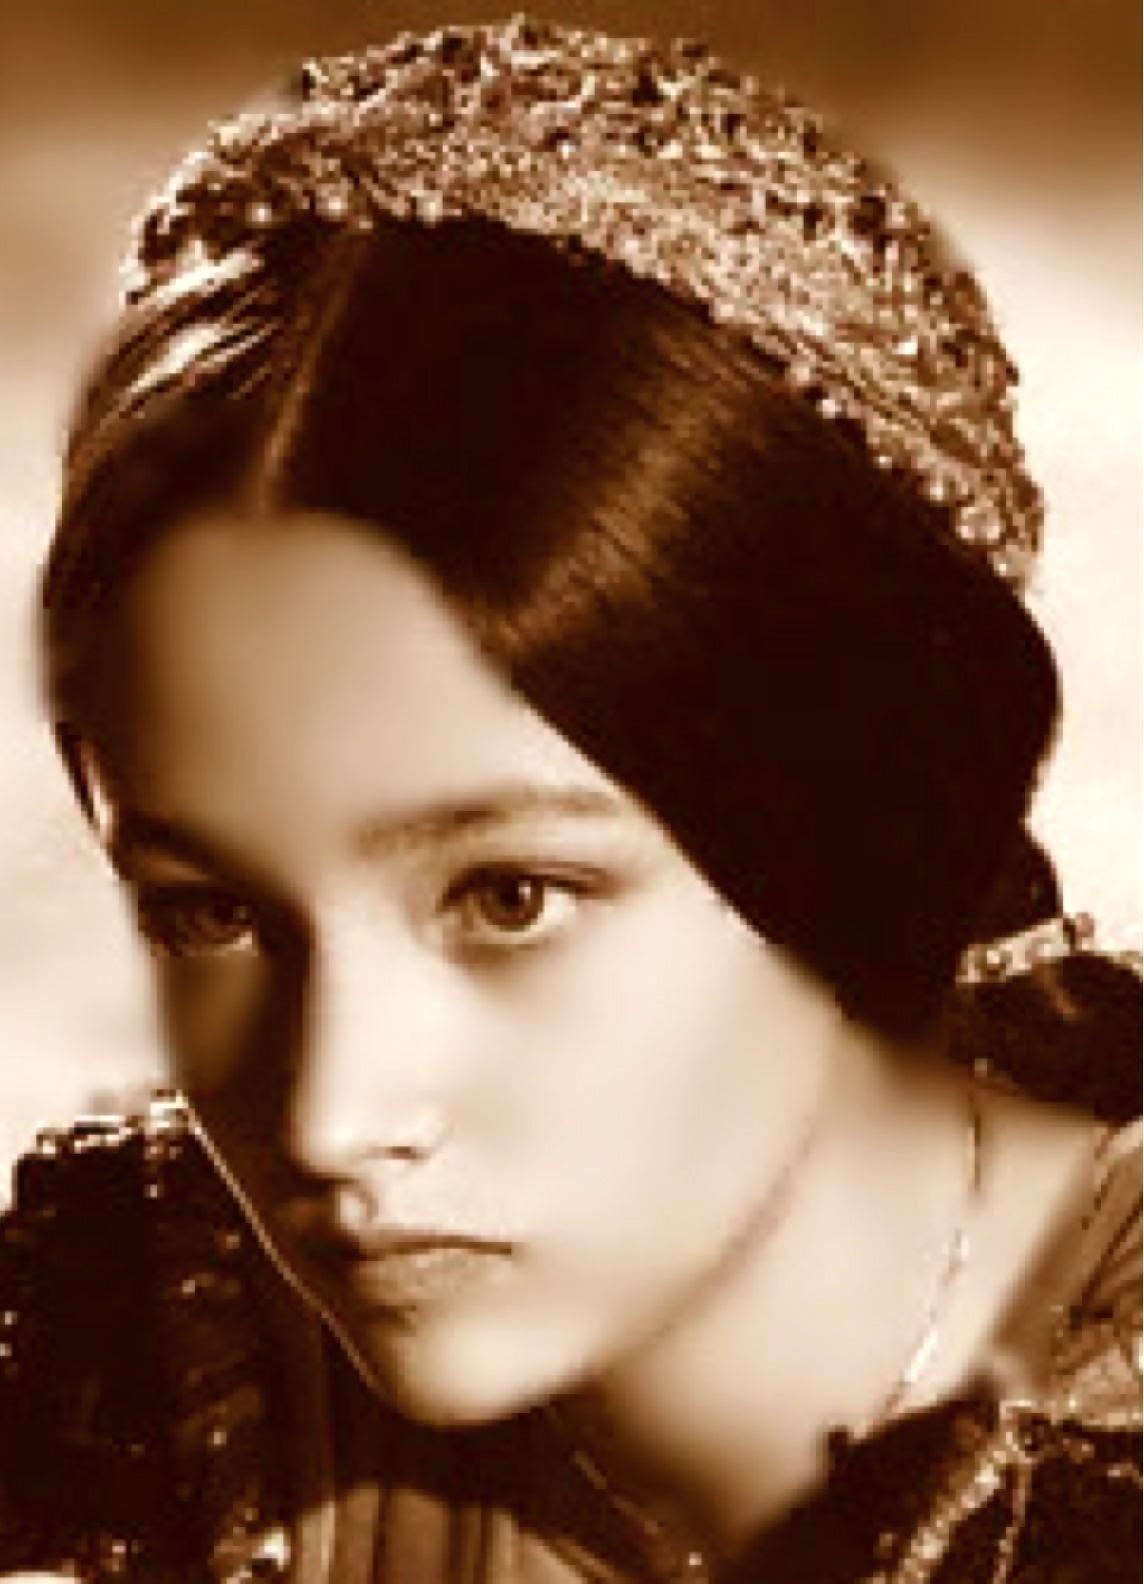 Juliet In Romeo And Juliet Olivia Olivia hussey as juliet 1968